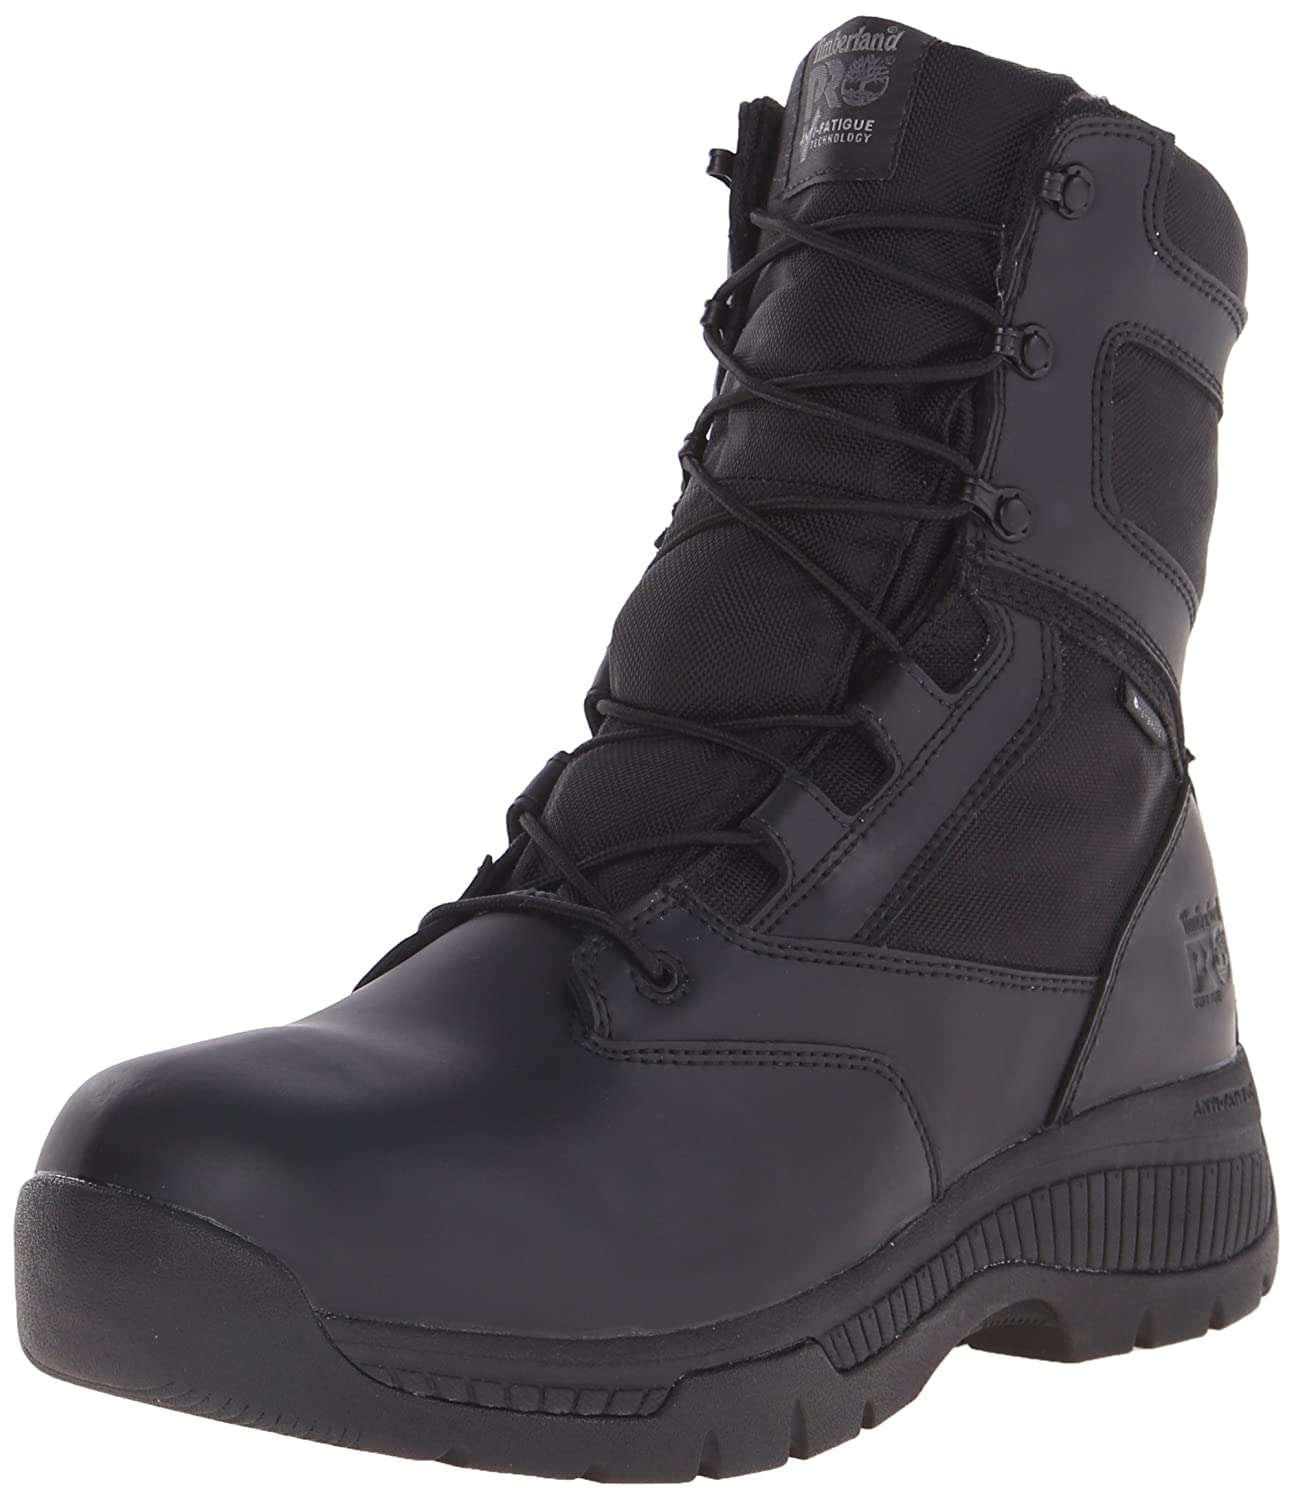 Timberland PRO メンズ B00RKM7AF4 12 D(M) US|Black Smooth Leather Ballistic Nylon Black Smooth Leather Ballistic Nylon 12 D(M) US